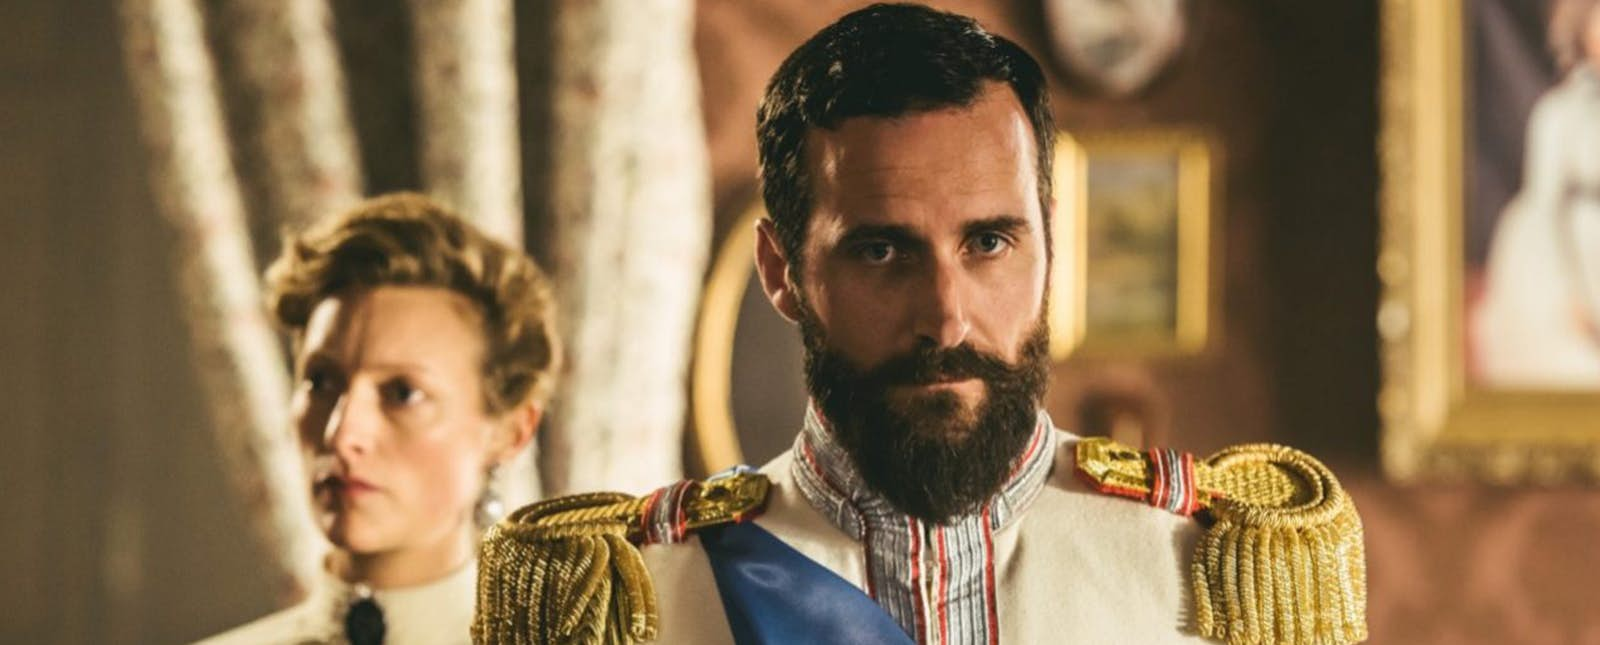 Will There Be A Second Season Of The Last Czars?